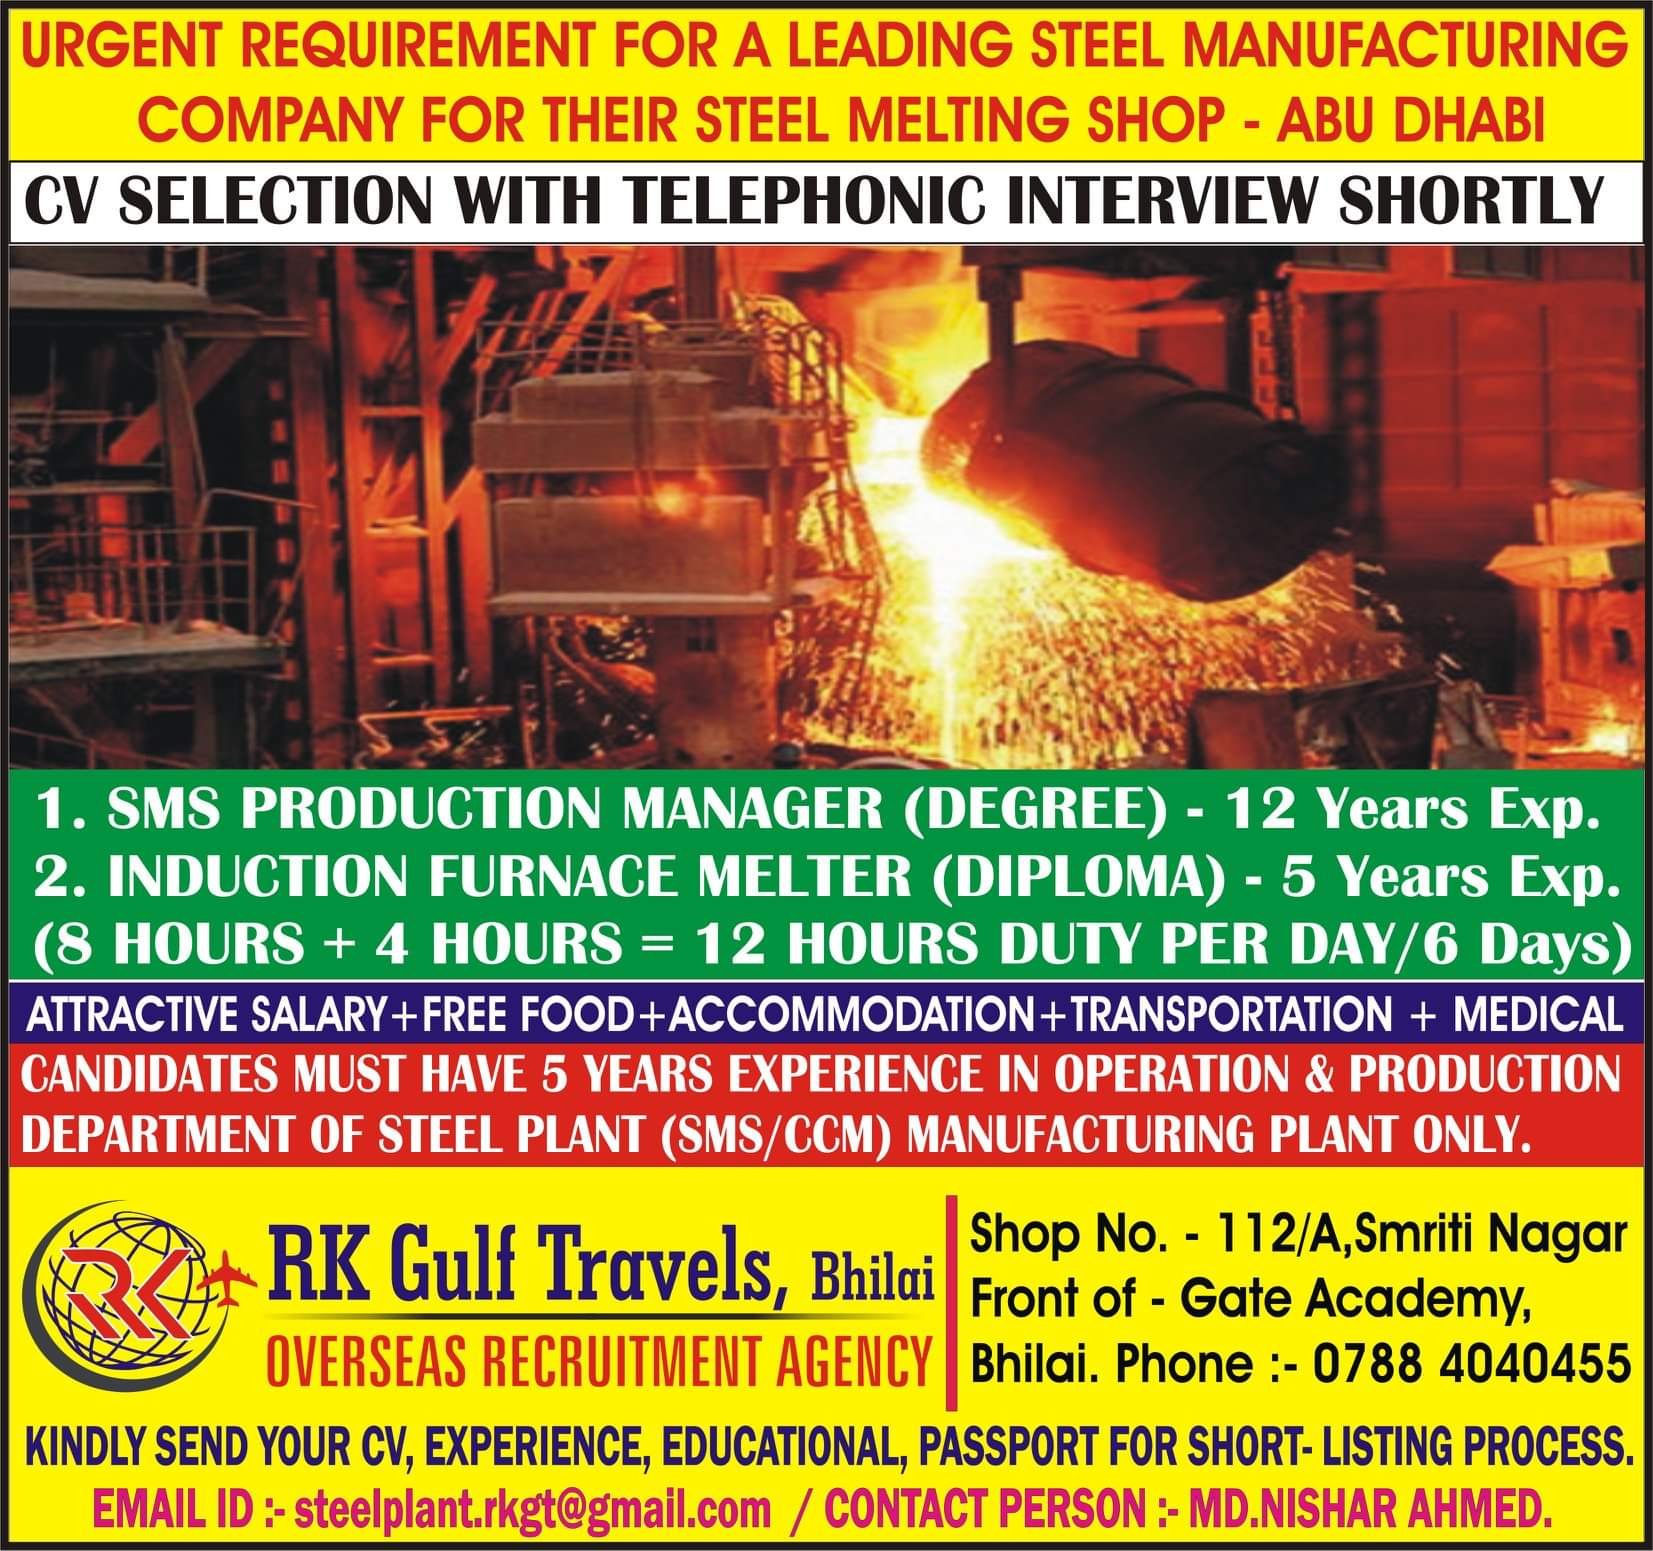 URGENTLY REQUIRED FOR A LEADING STEEL MANUFACTURING PLANT - ABU